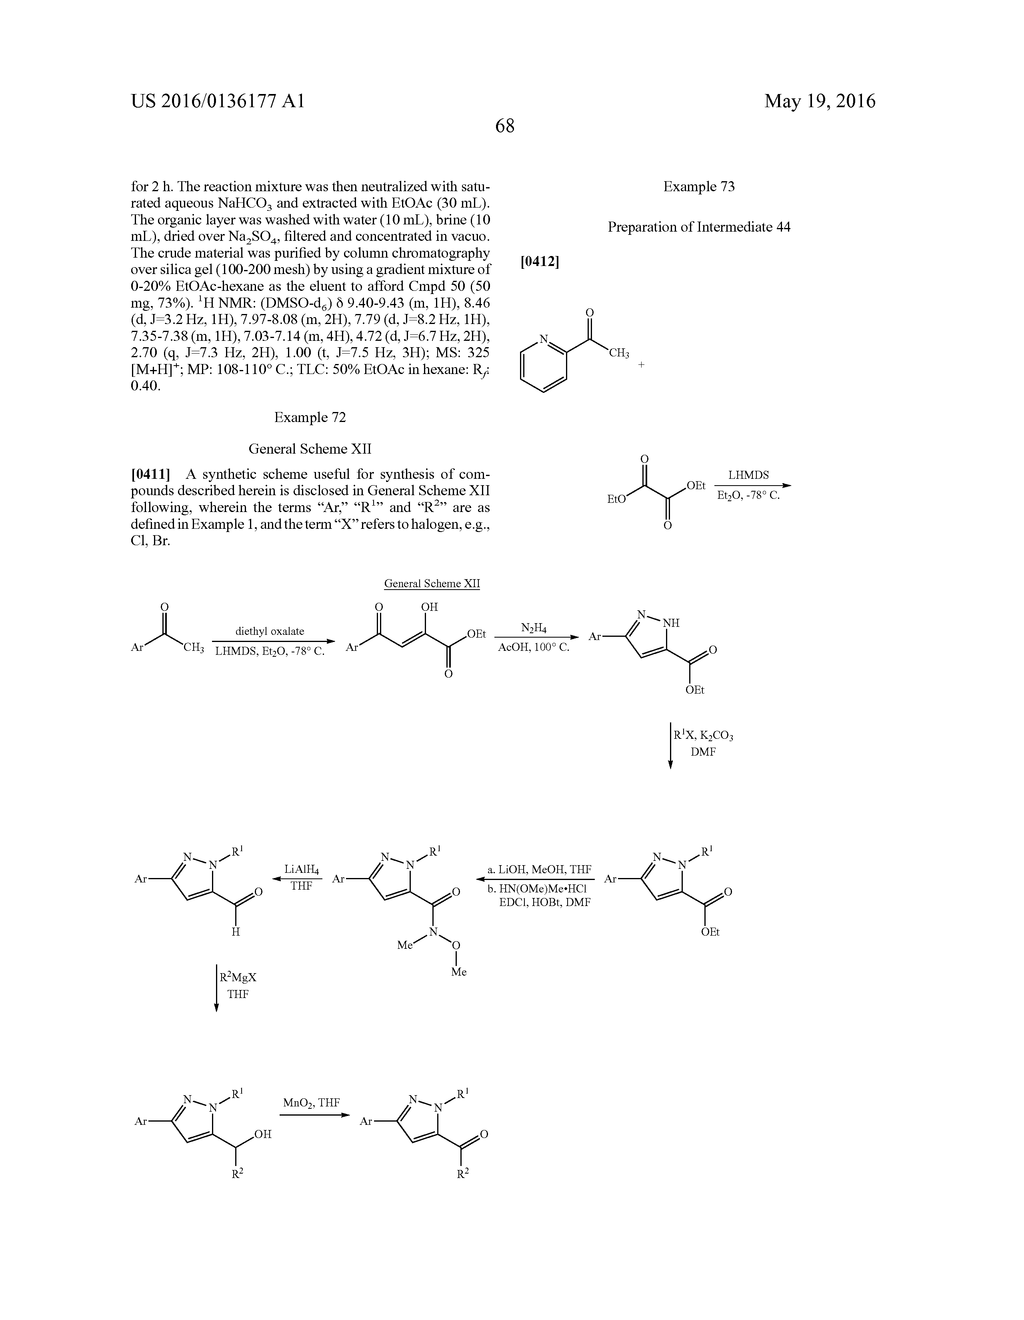 MULTISUBSTITUTED AROMATIC COMPOUNDS AS INHIBITORS OF THROMBIN - diagram, schematic, and image 69